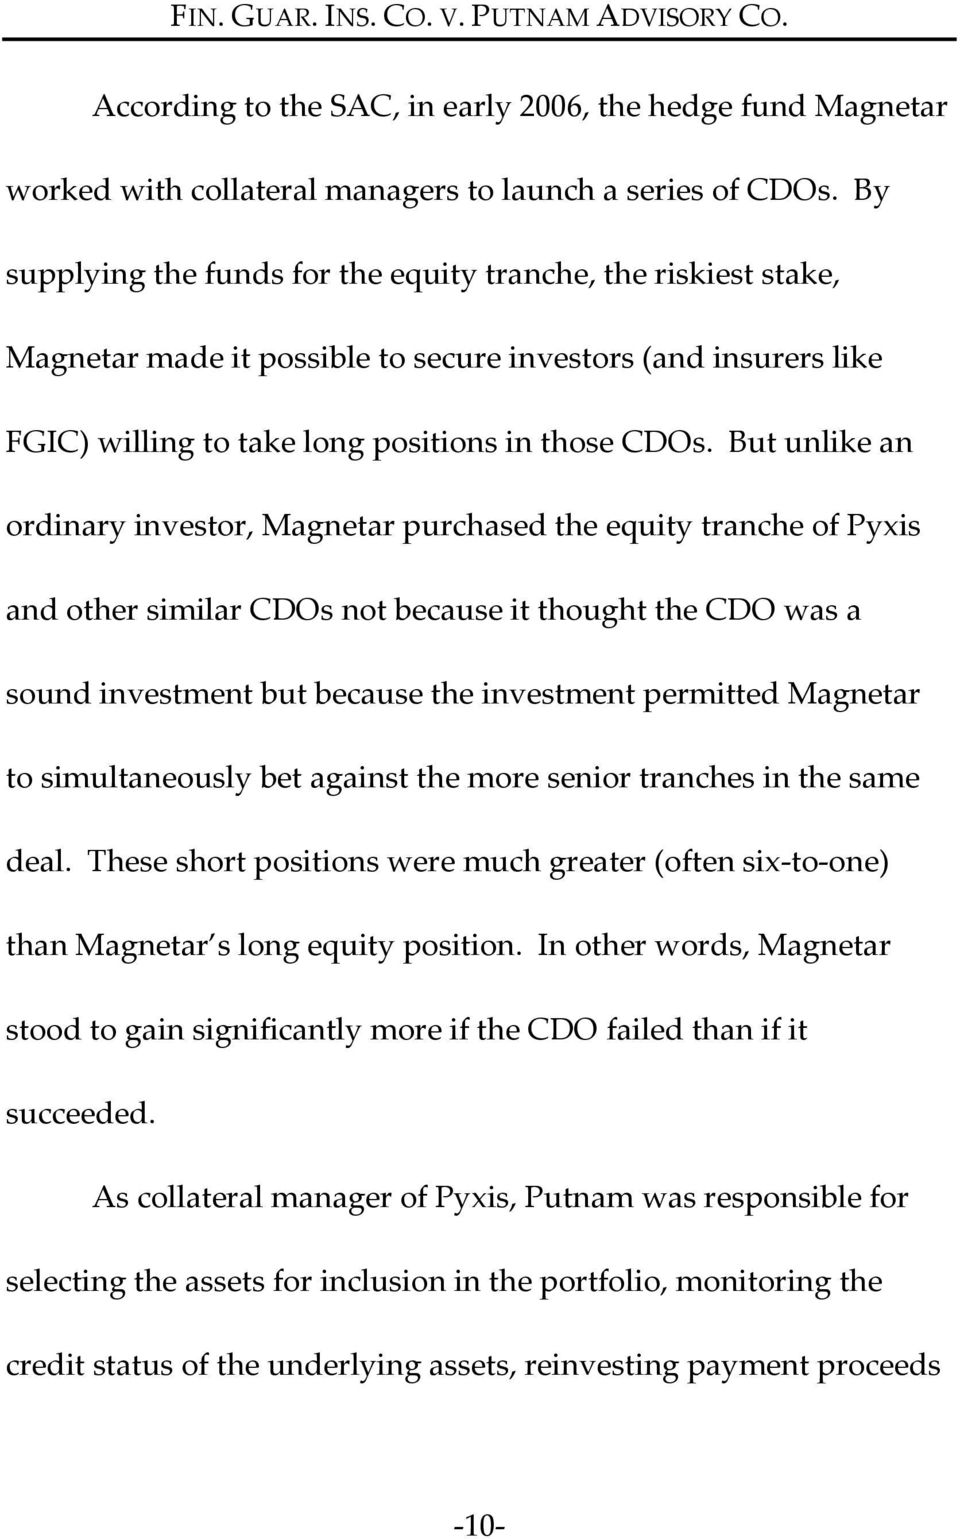 But unlike an ordinary investor, Magnetar purchased the equity tranche of Pyxis and other similar CDOs not because it thought the CDO was a sound investment but because the investment permitted